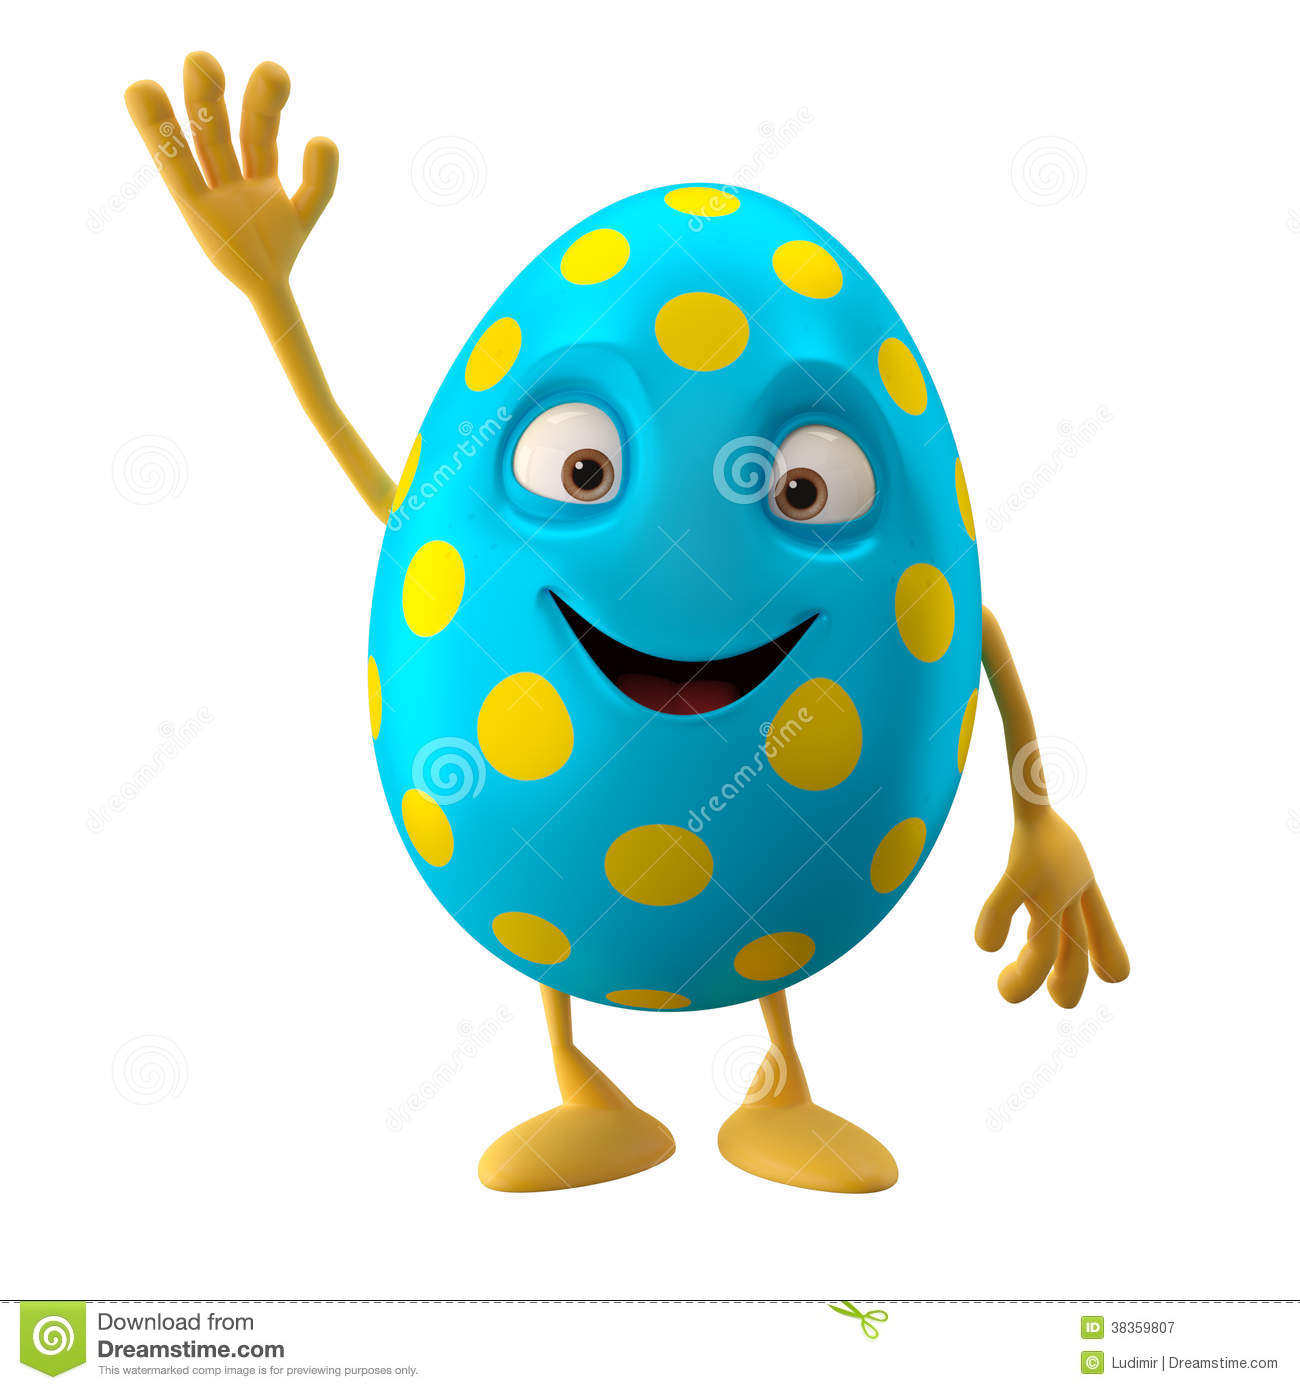 Smiling Easter Egg Funny 3D Cartoon Character Waving Hands Greeting Royalty Free Stock